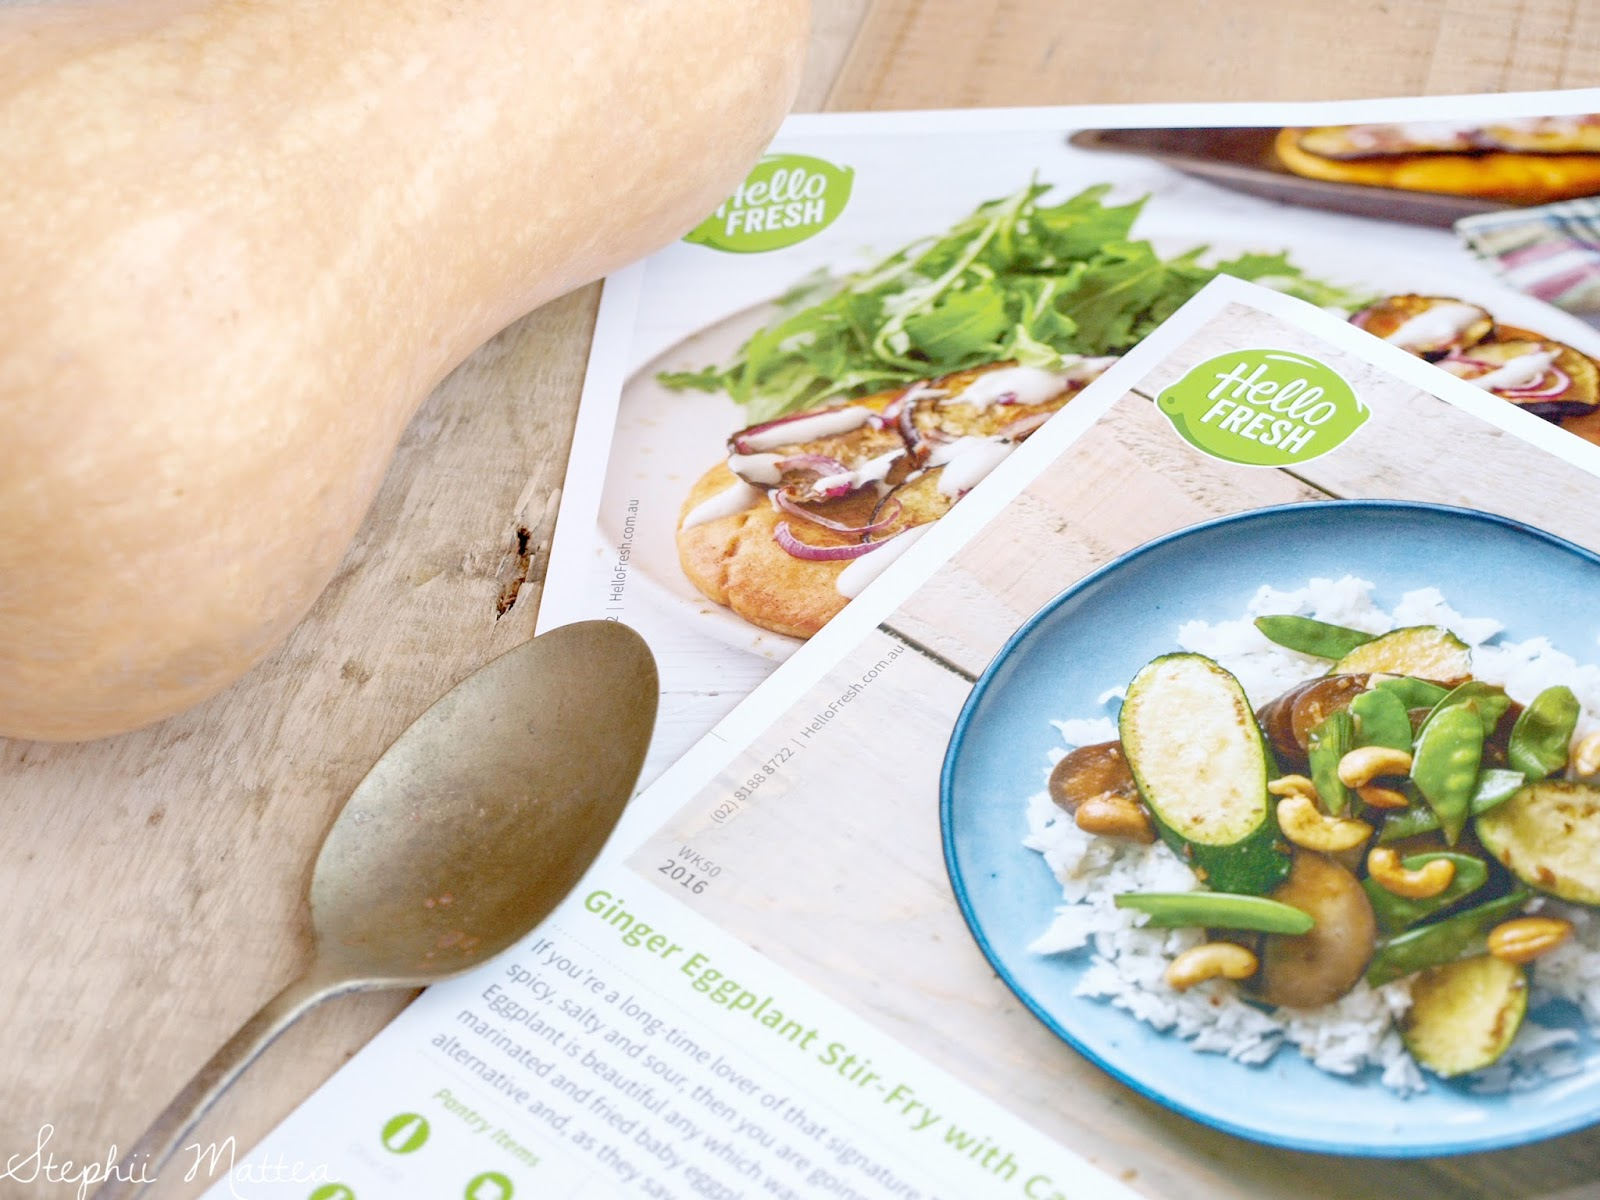 Online Voucher Code 100 Off Hellofresh April 2020